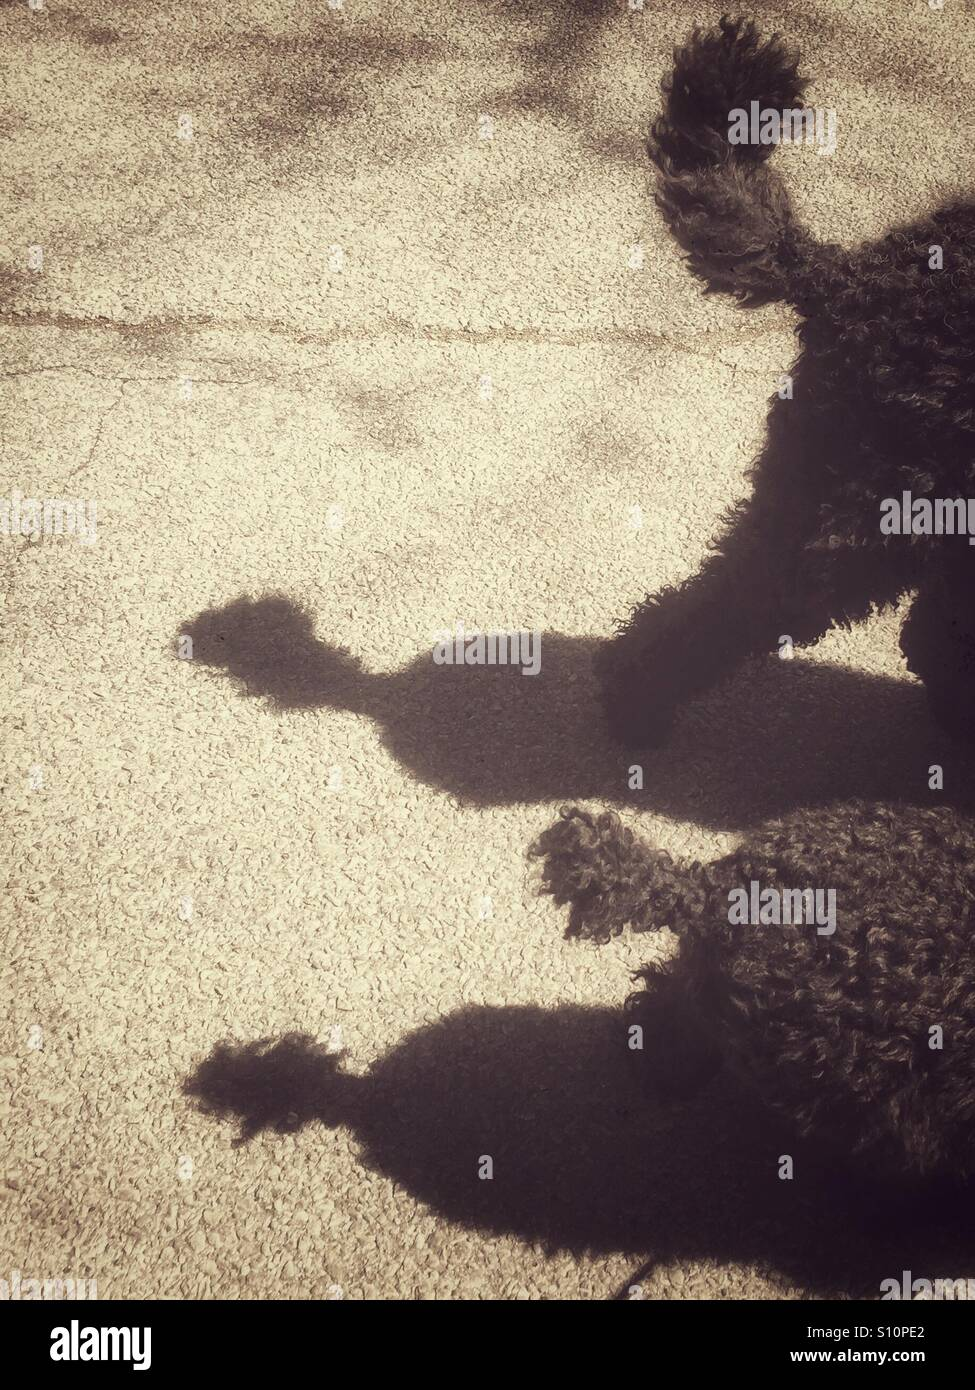 Rear ends and tails of two black poodles and their shadows in vintage monochrome look - Stock Image